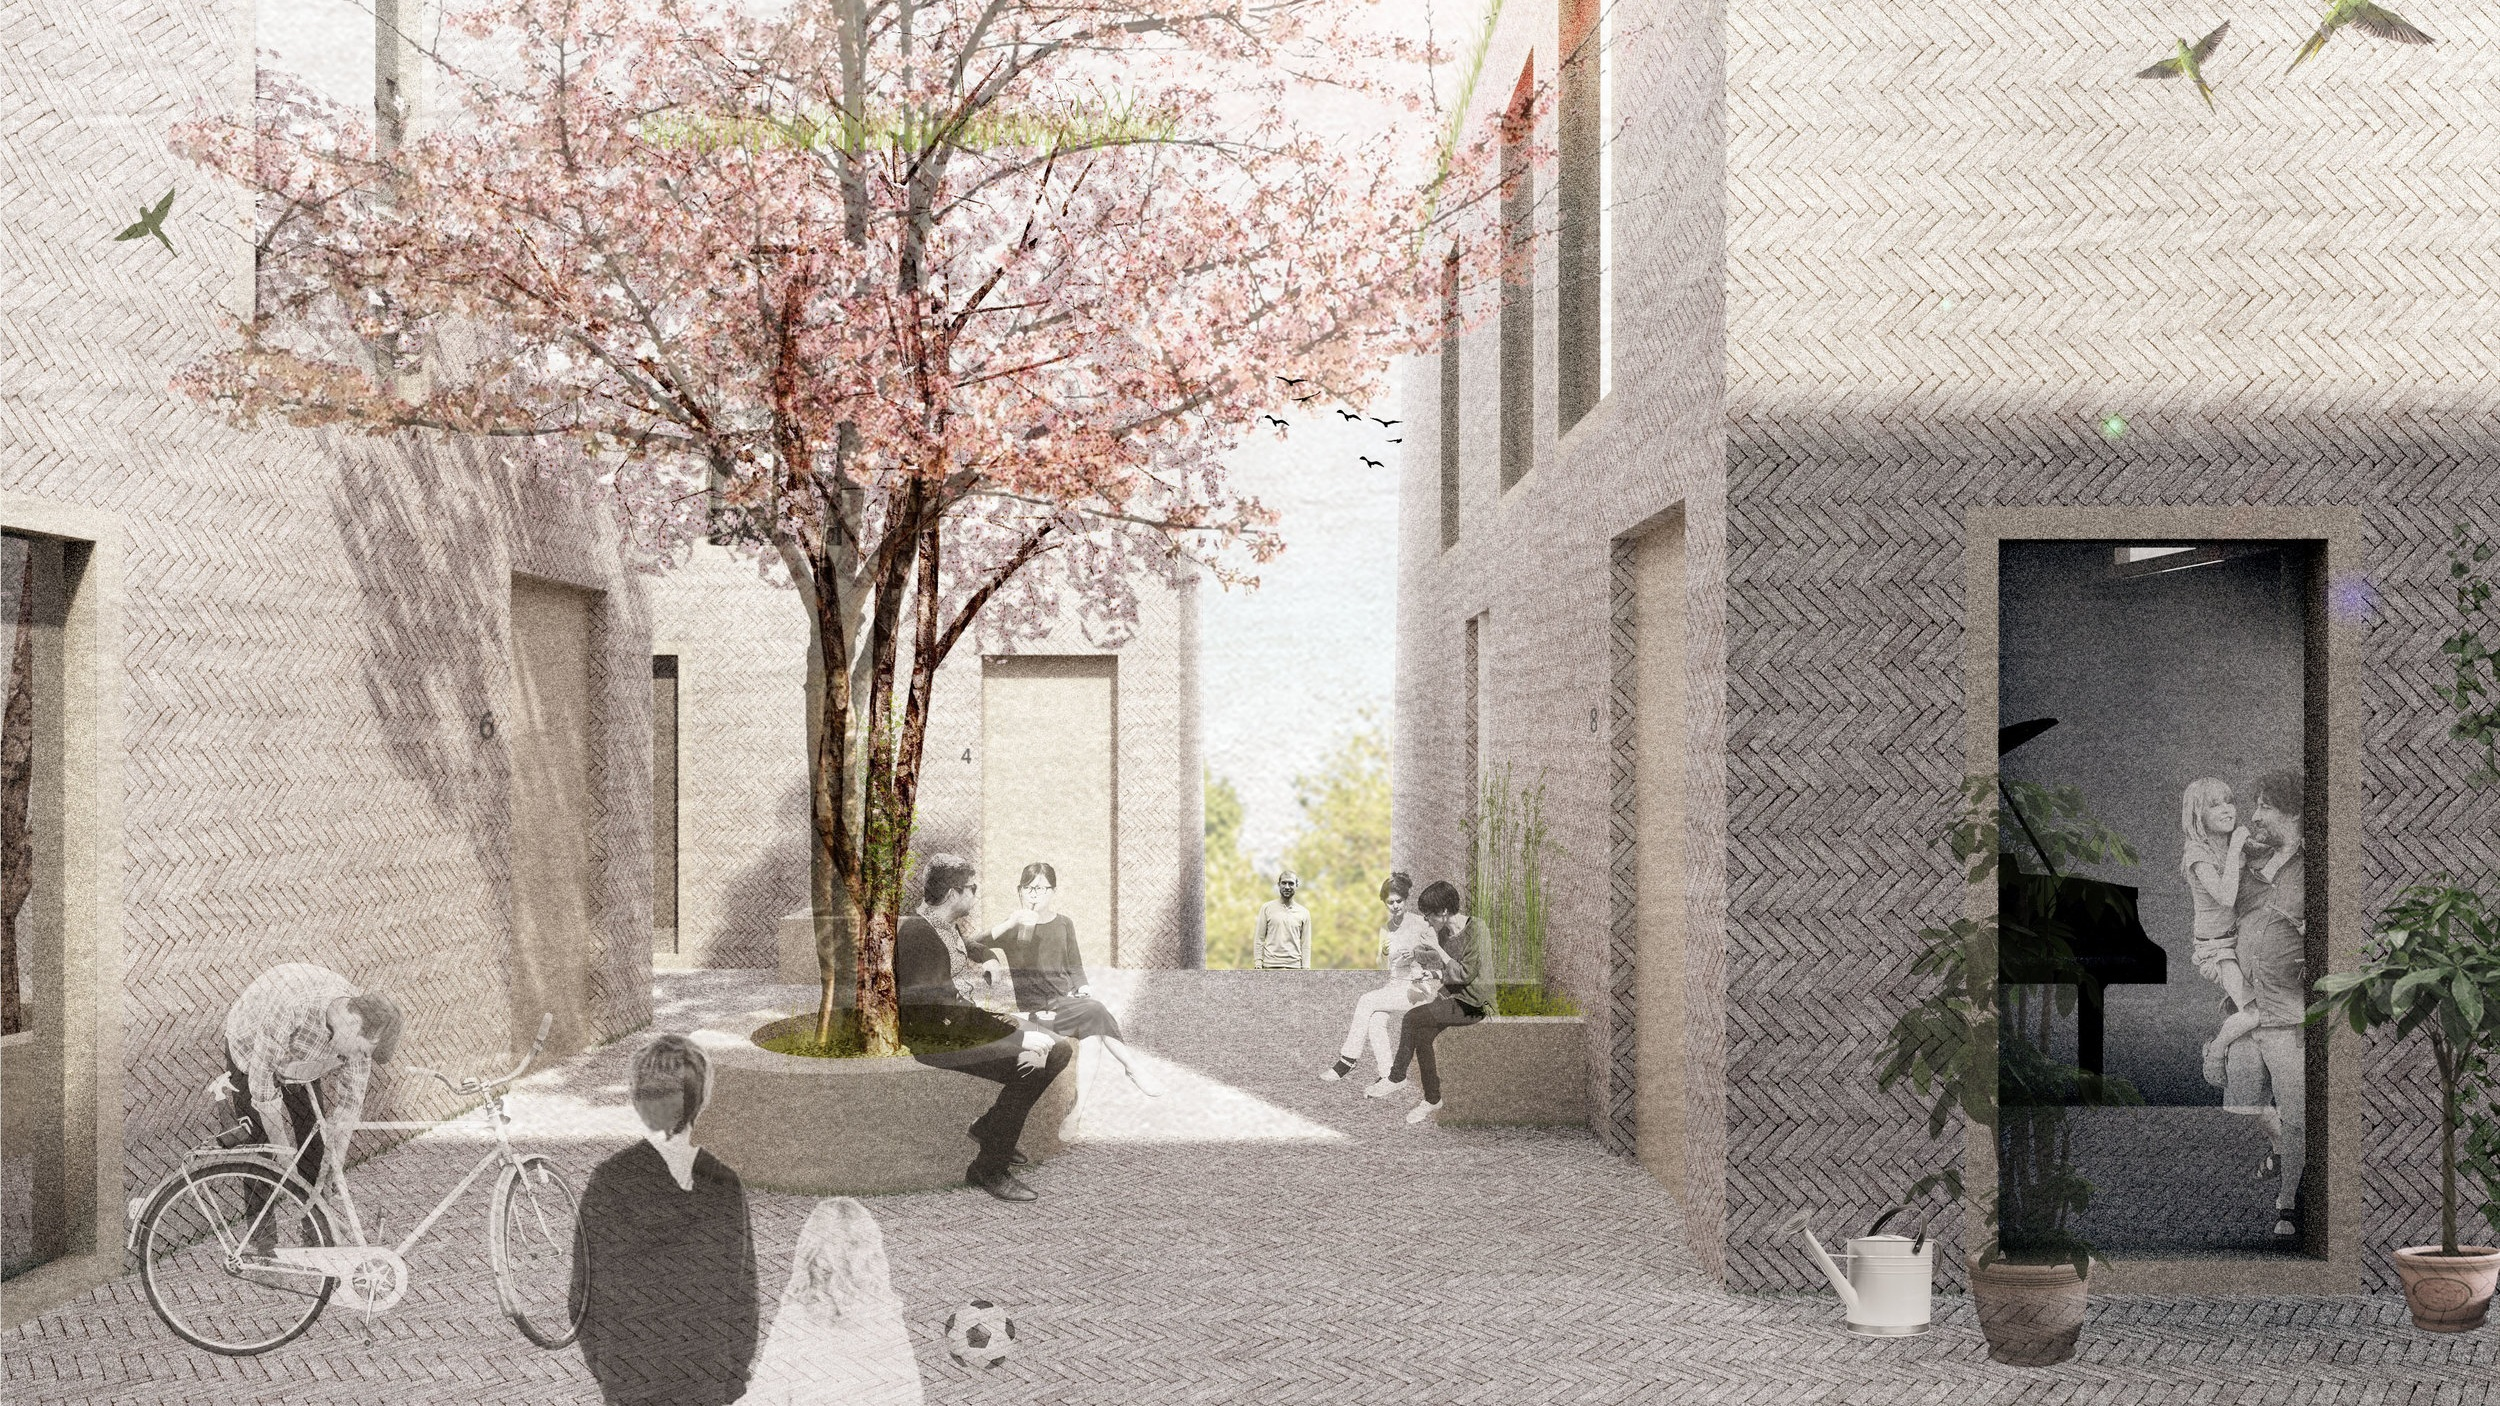 The top 6 houses are collected around a raised courtyard, creating a small scale shared semi-public space.